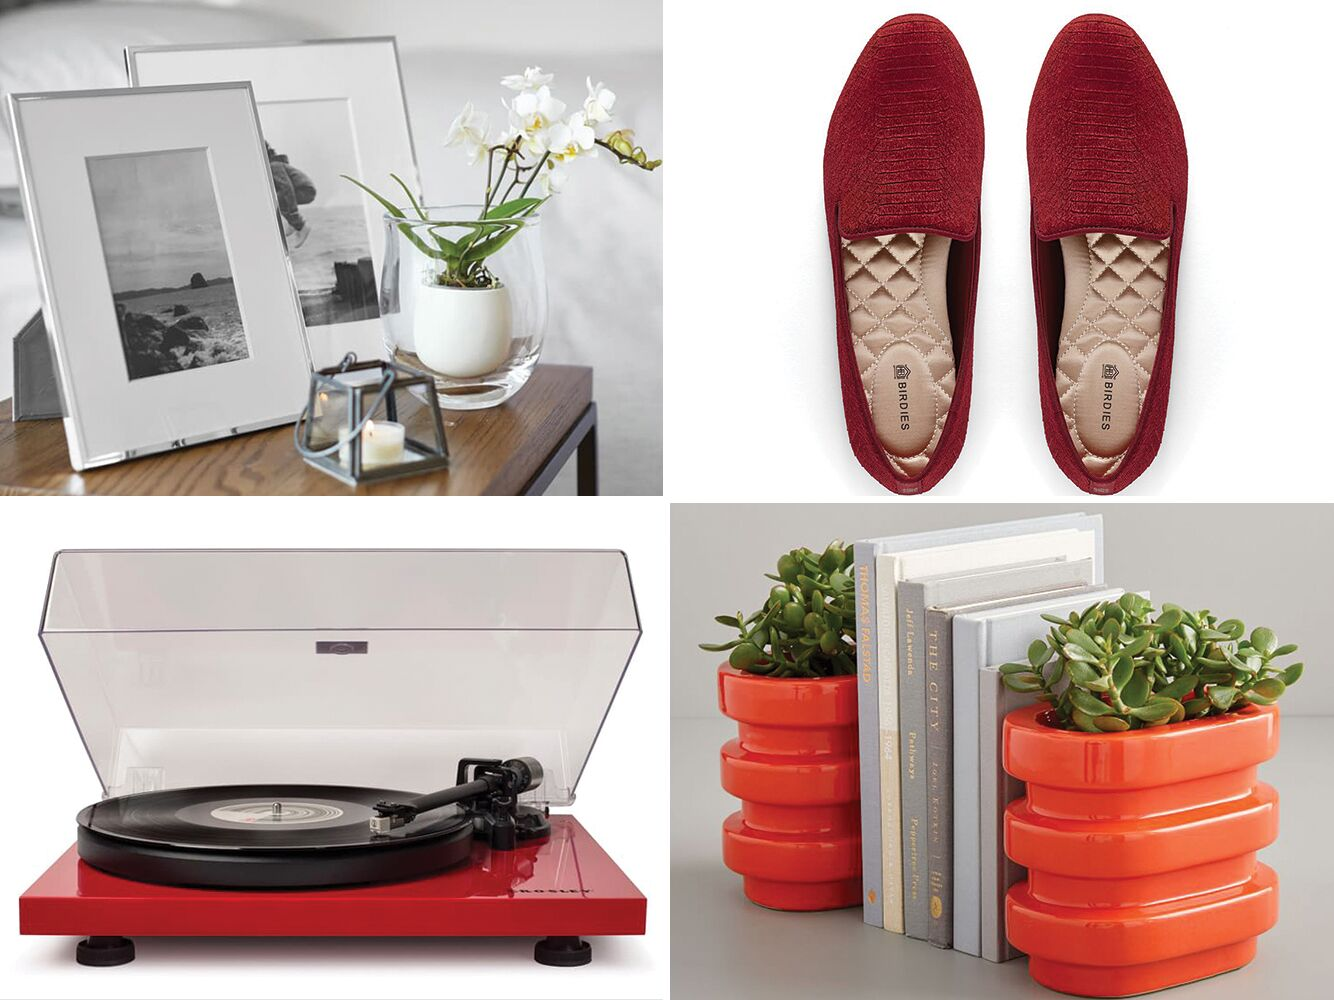 40th Anniversary Gift Ideas for Her